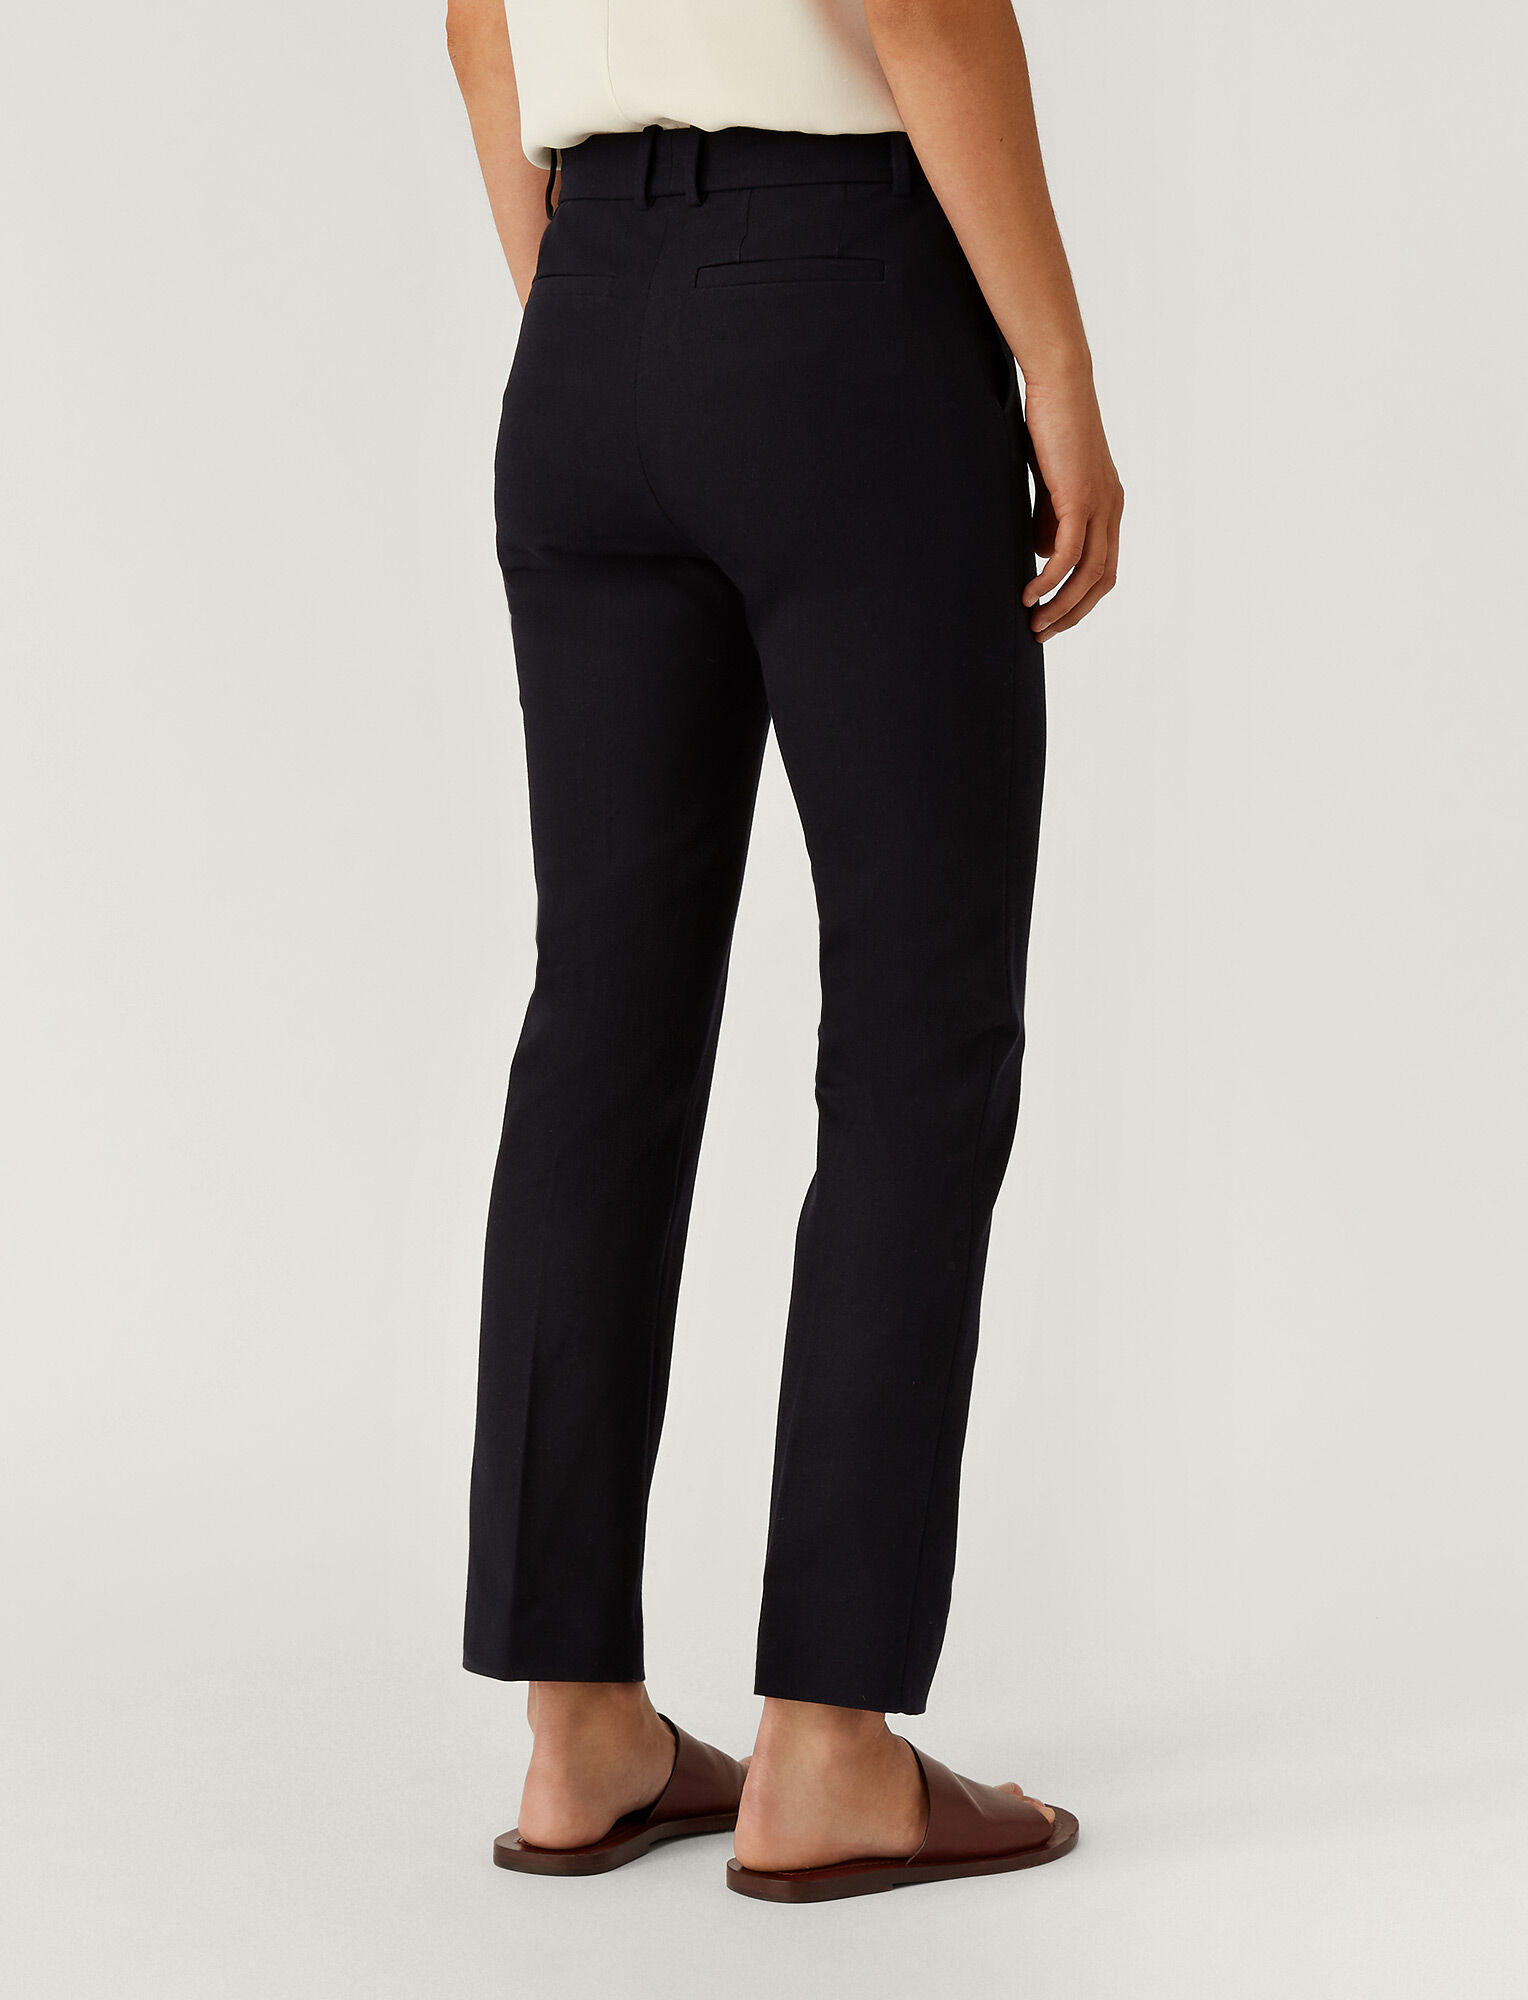 Joseph, Coleman Gabardine Stretch Trousers, in NAVY